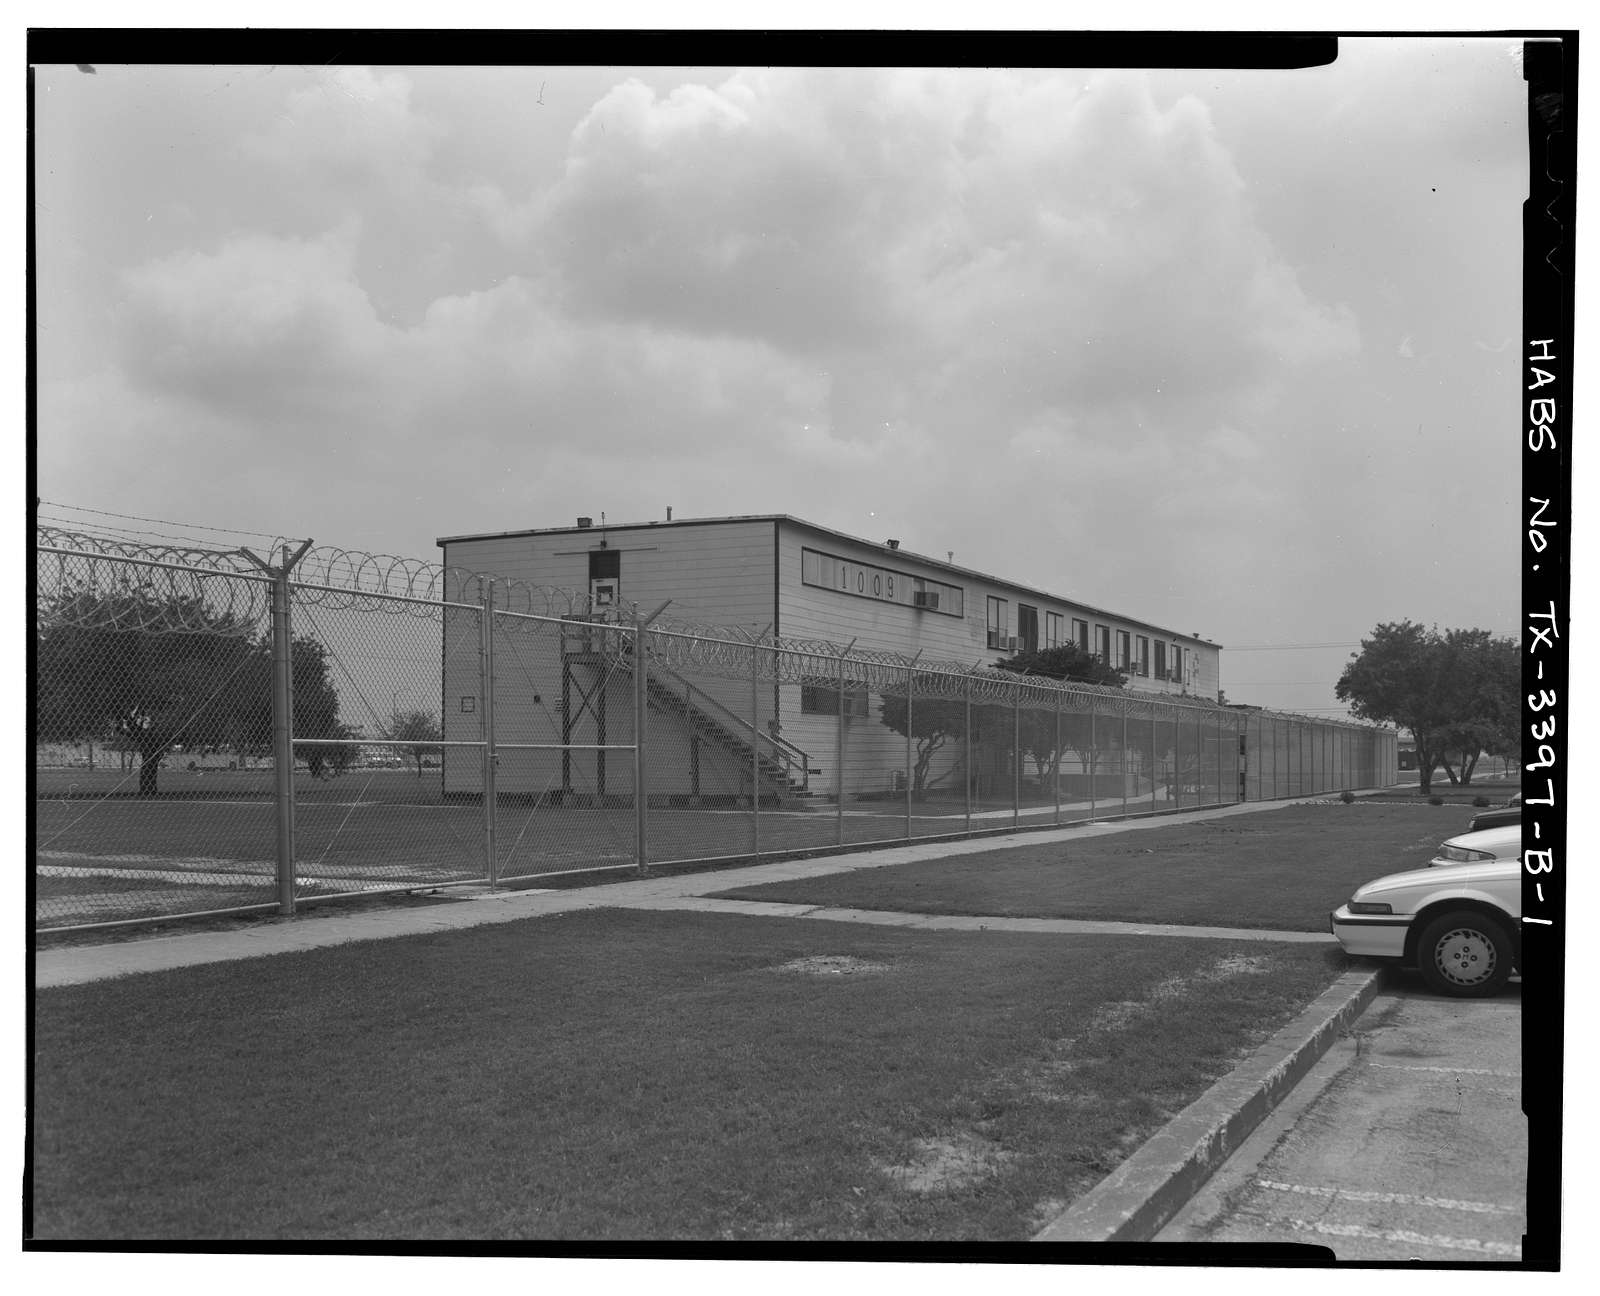 Naval Air Station Chase Field, Building 1009, Essex Street, .68 mile South-southeast of intersection of Texas State Highway 202 & Independence Street, Beeville, Bee County, TX